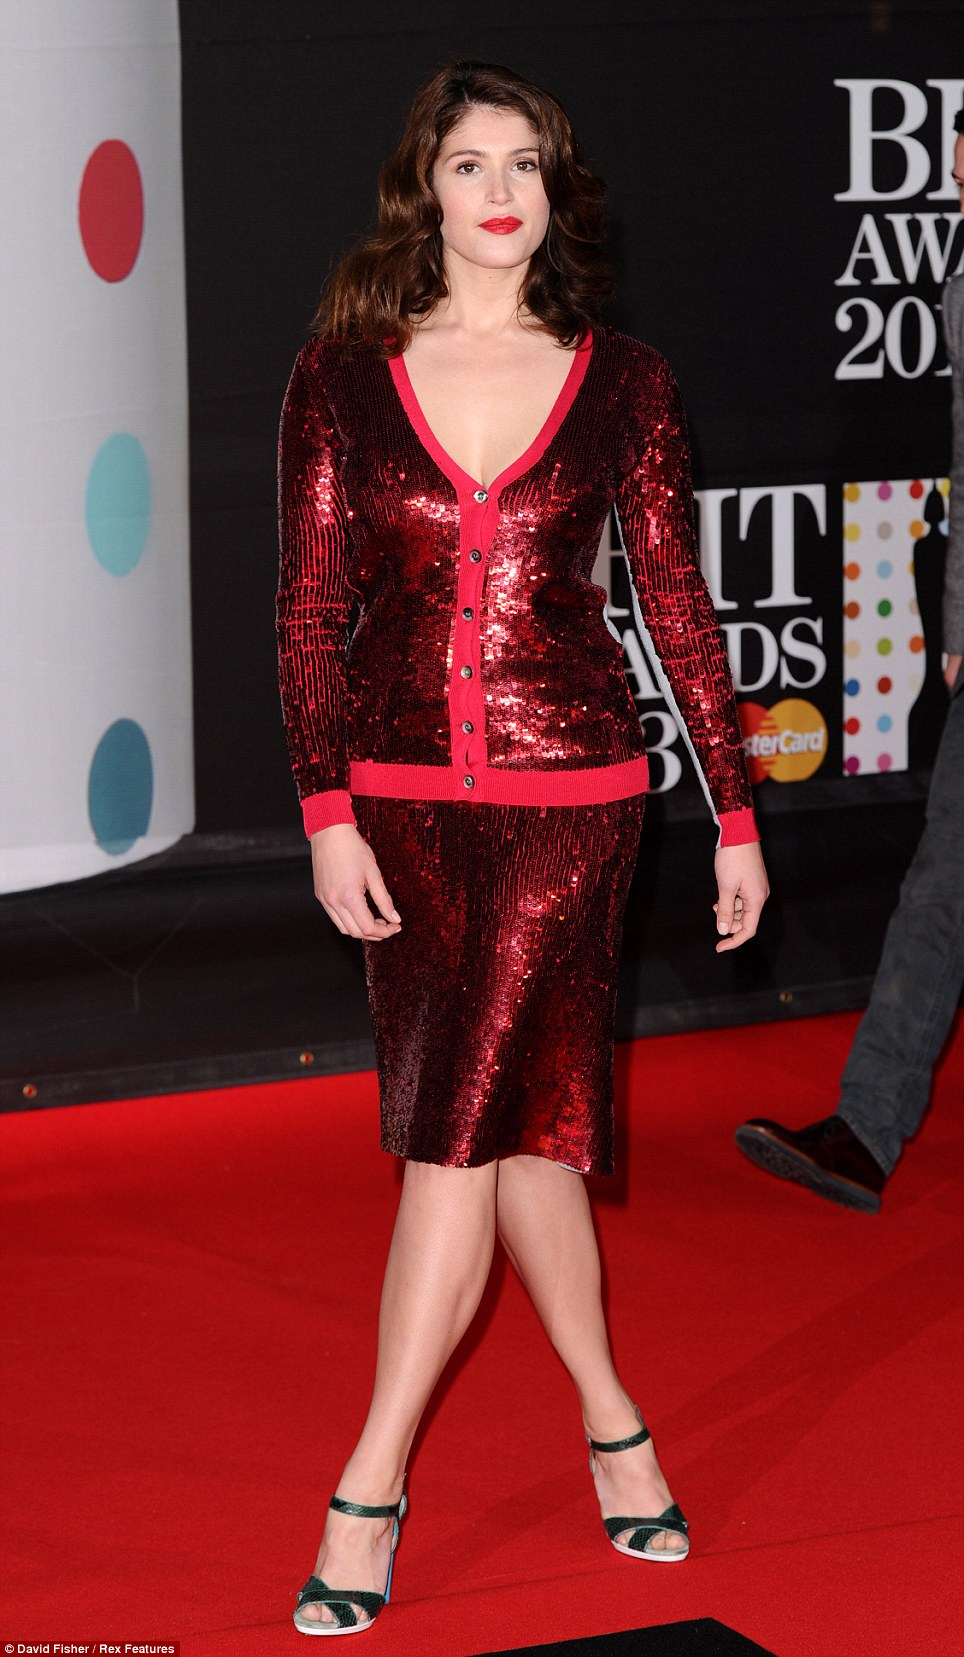 Shining bright: Gemma Arterton lead the glamour at the 2013 BRIT Awards as she walked the red carpet in a sequin shirt dress and matching rouge lipstick